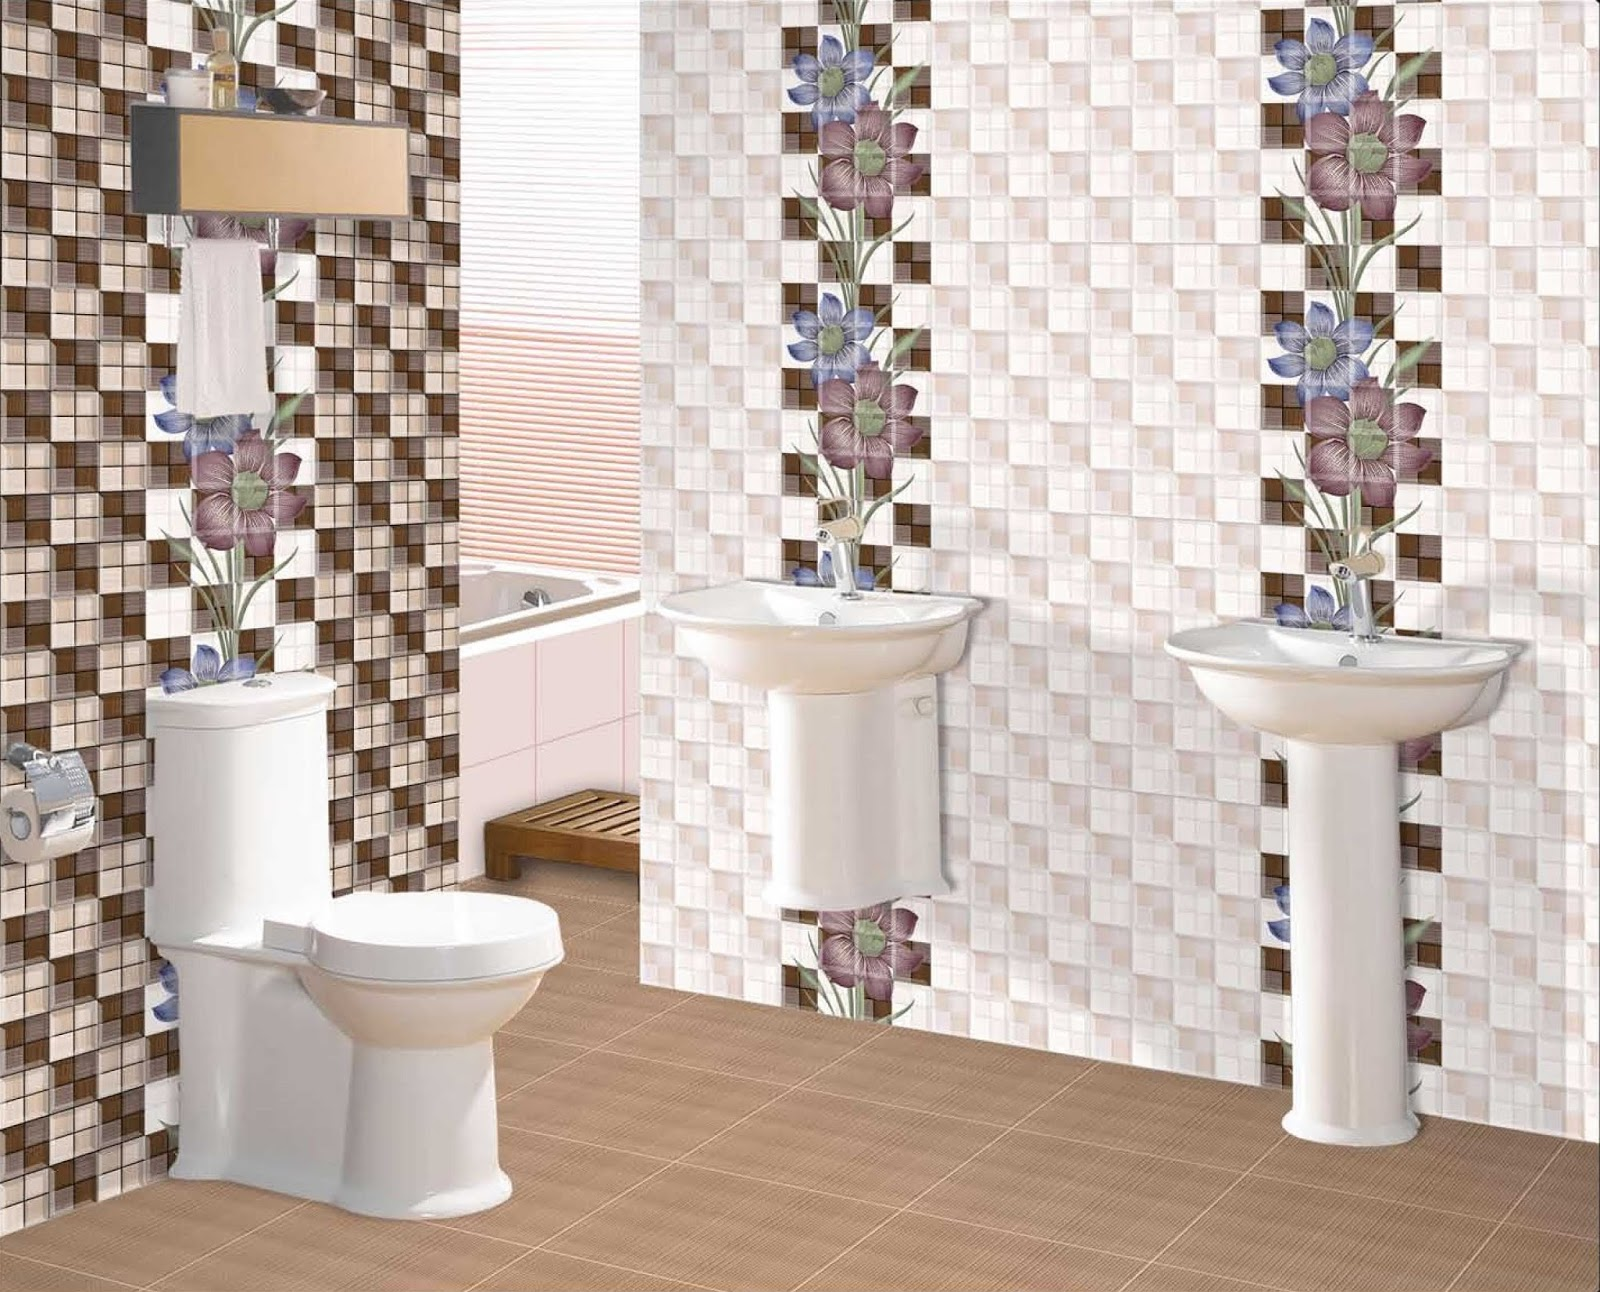 Bathroom Digital Tiles Design : Innovative Orange Bathroom Digital ...